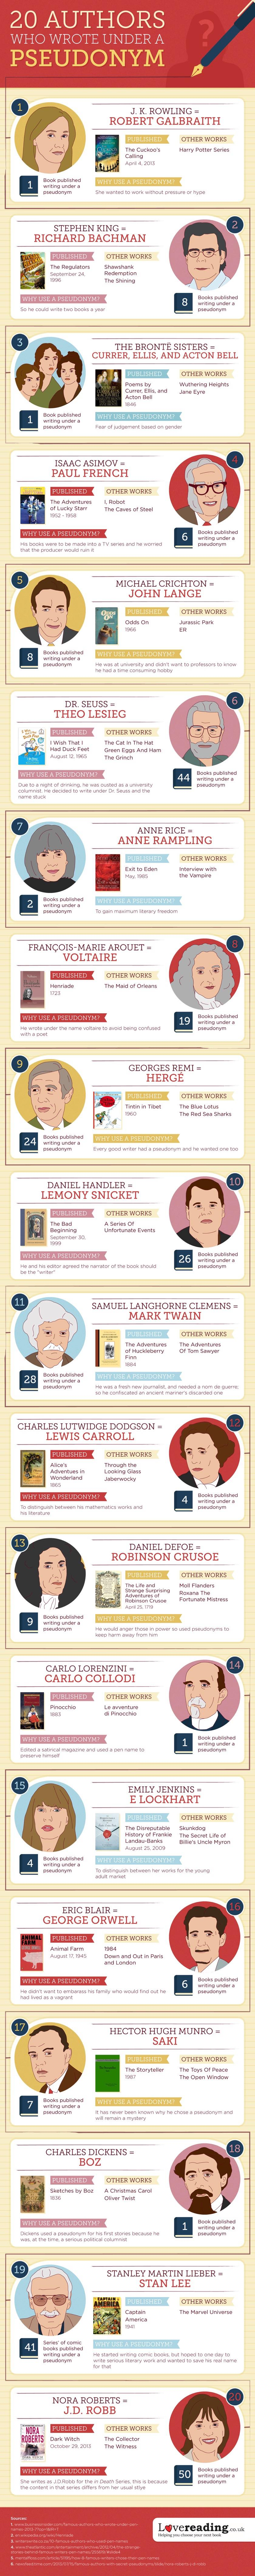 20 authors who wrote under a pseudonym #infographic